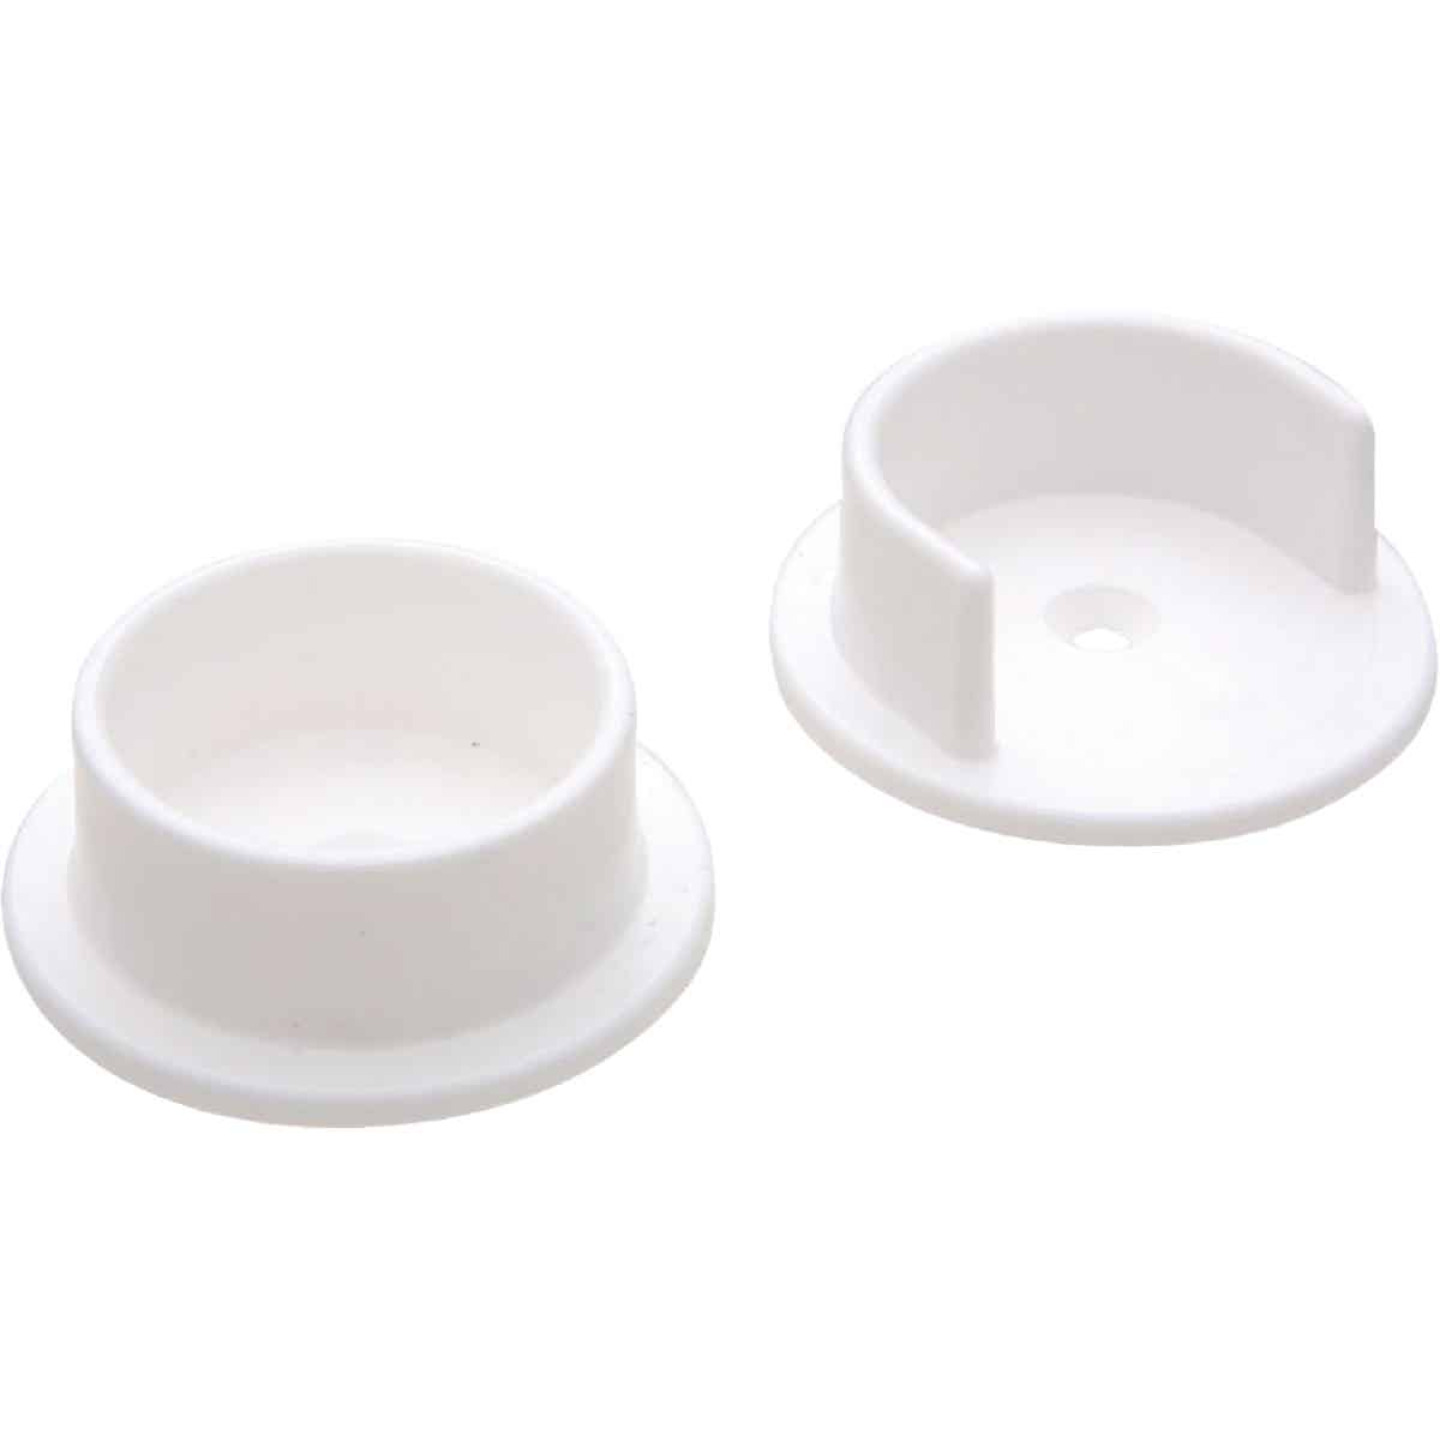 National 1-3/8 In. Plastic Closet Rod Socket, White (2 Per Bag) Image 1